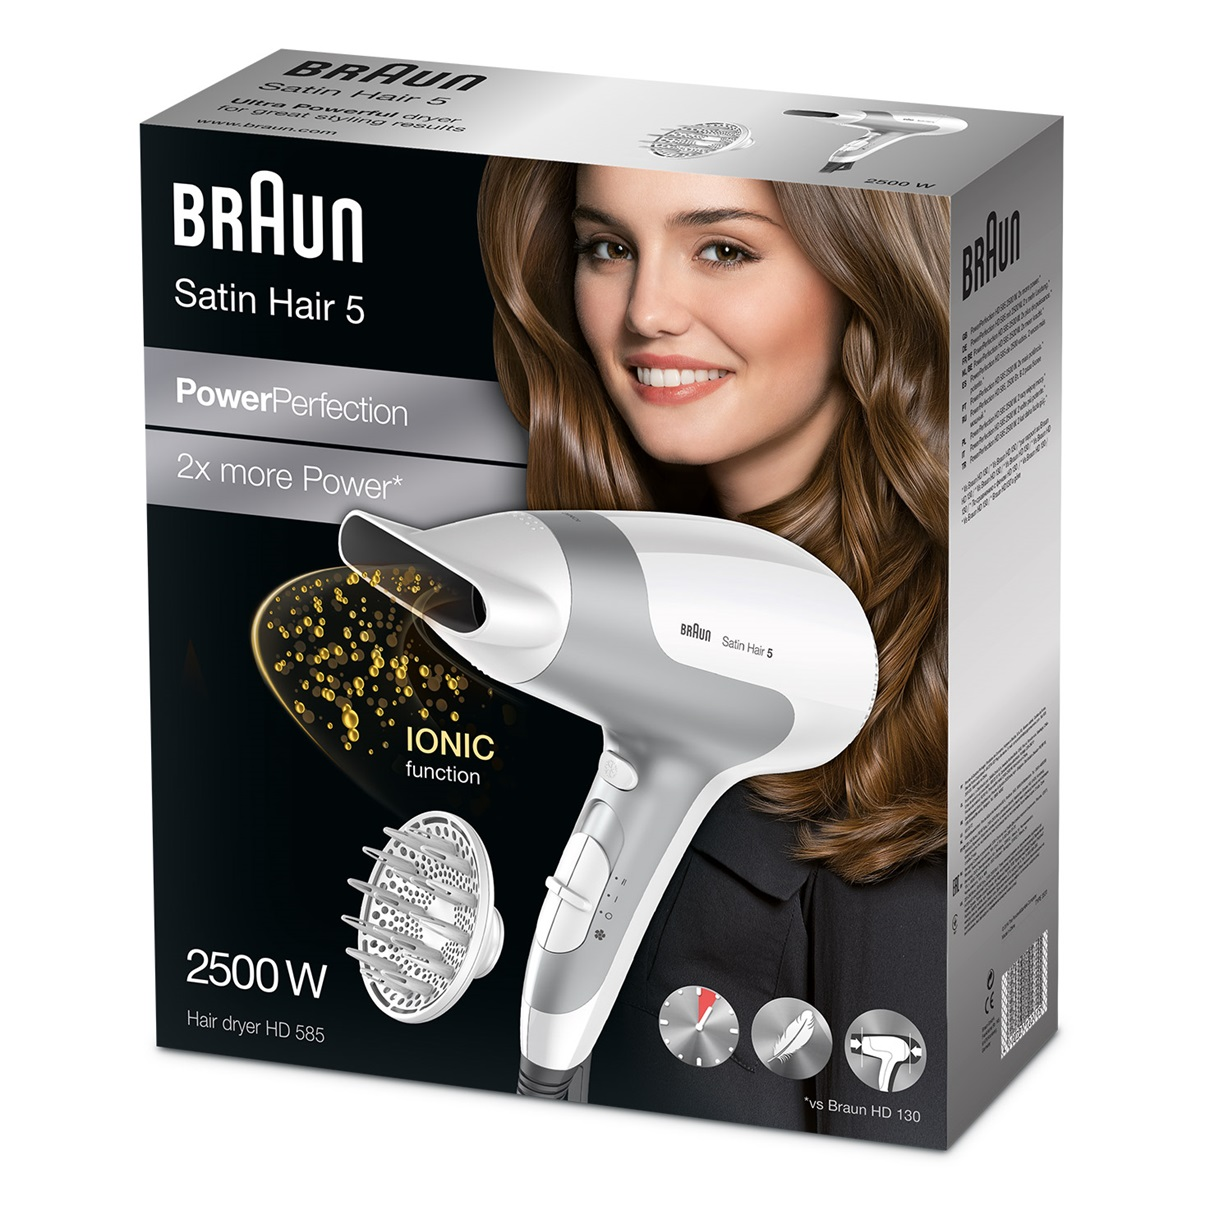 BRAUN HD580 Satin Hair 5 Power Perfection Asciugacapelli